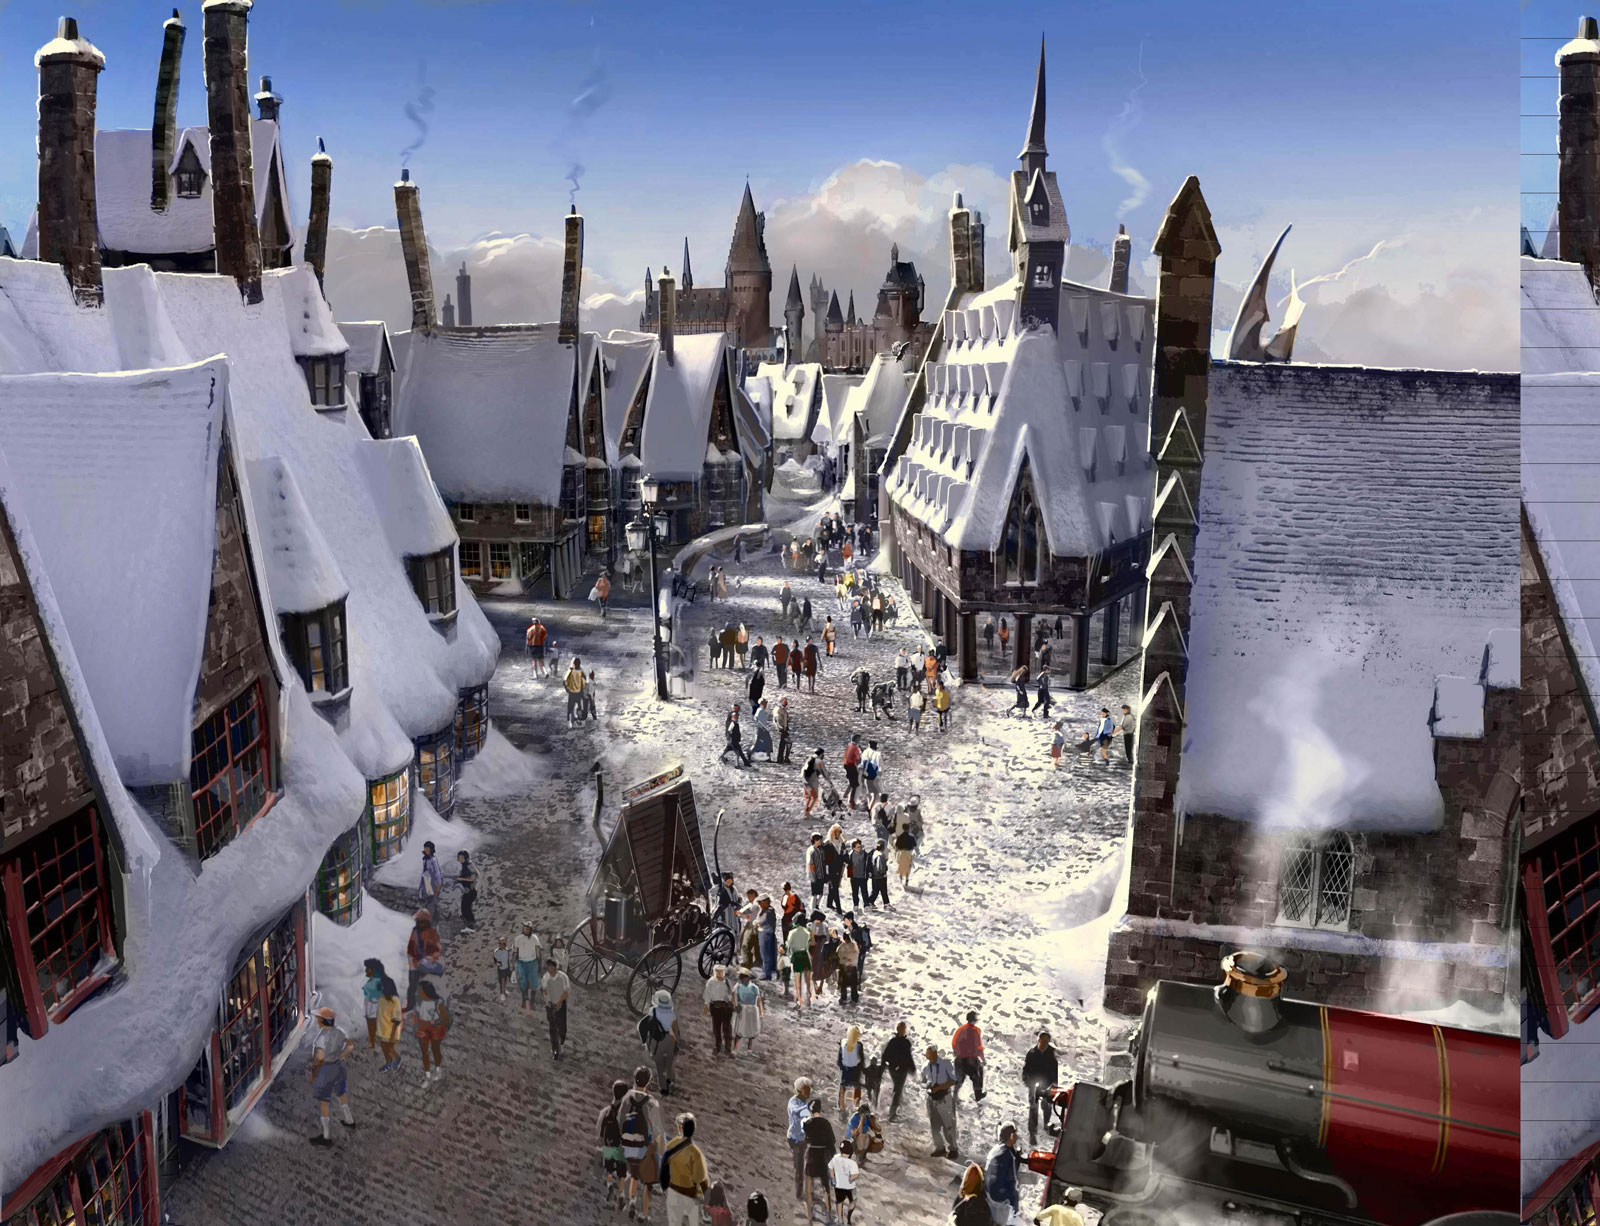 Wizarding World of Harry Potter &#8211; Harry Potter Theme Park Set for June Opening